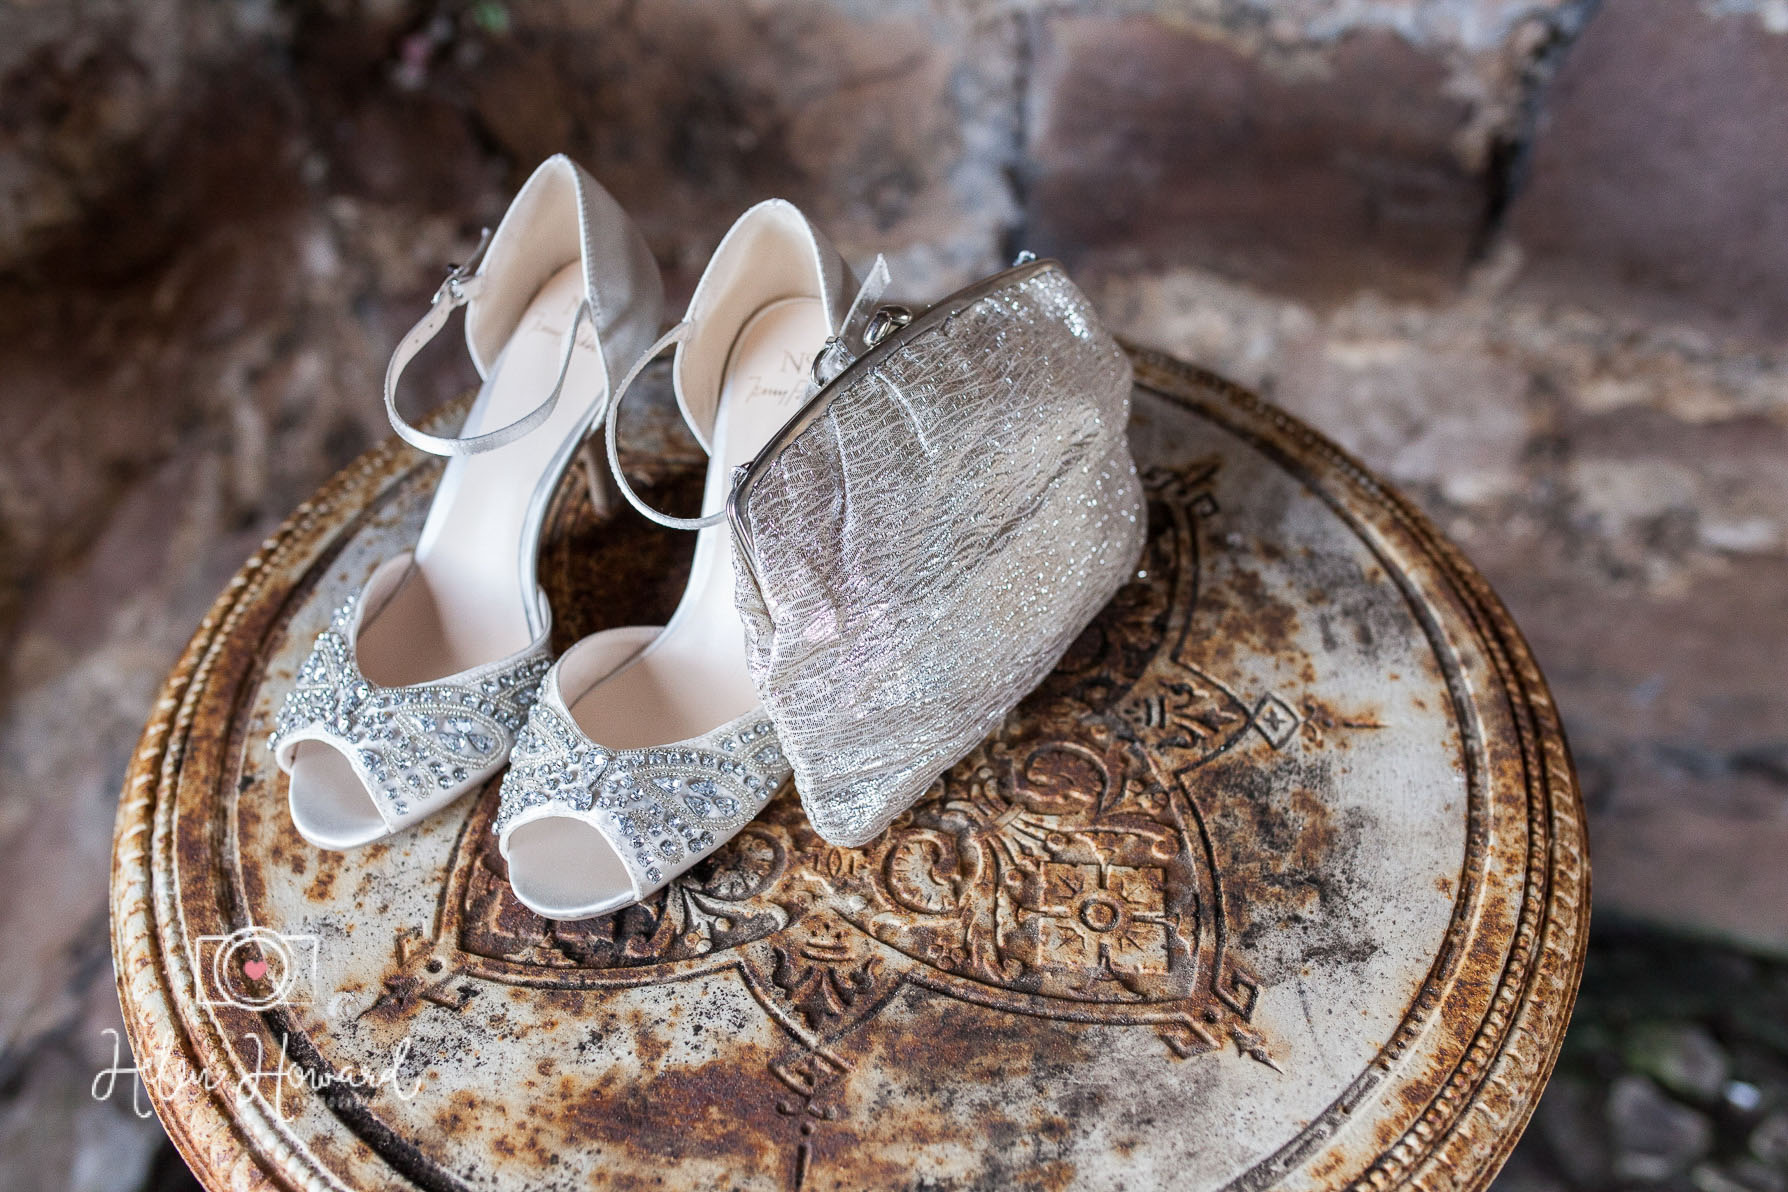 The Brides shoes and her granny's purse